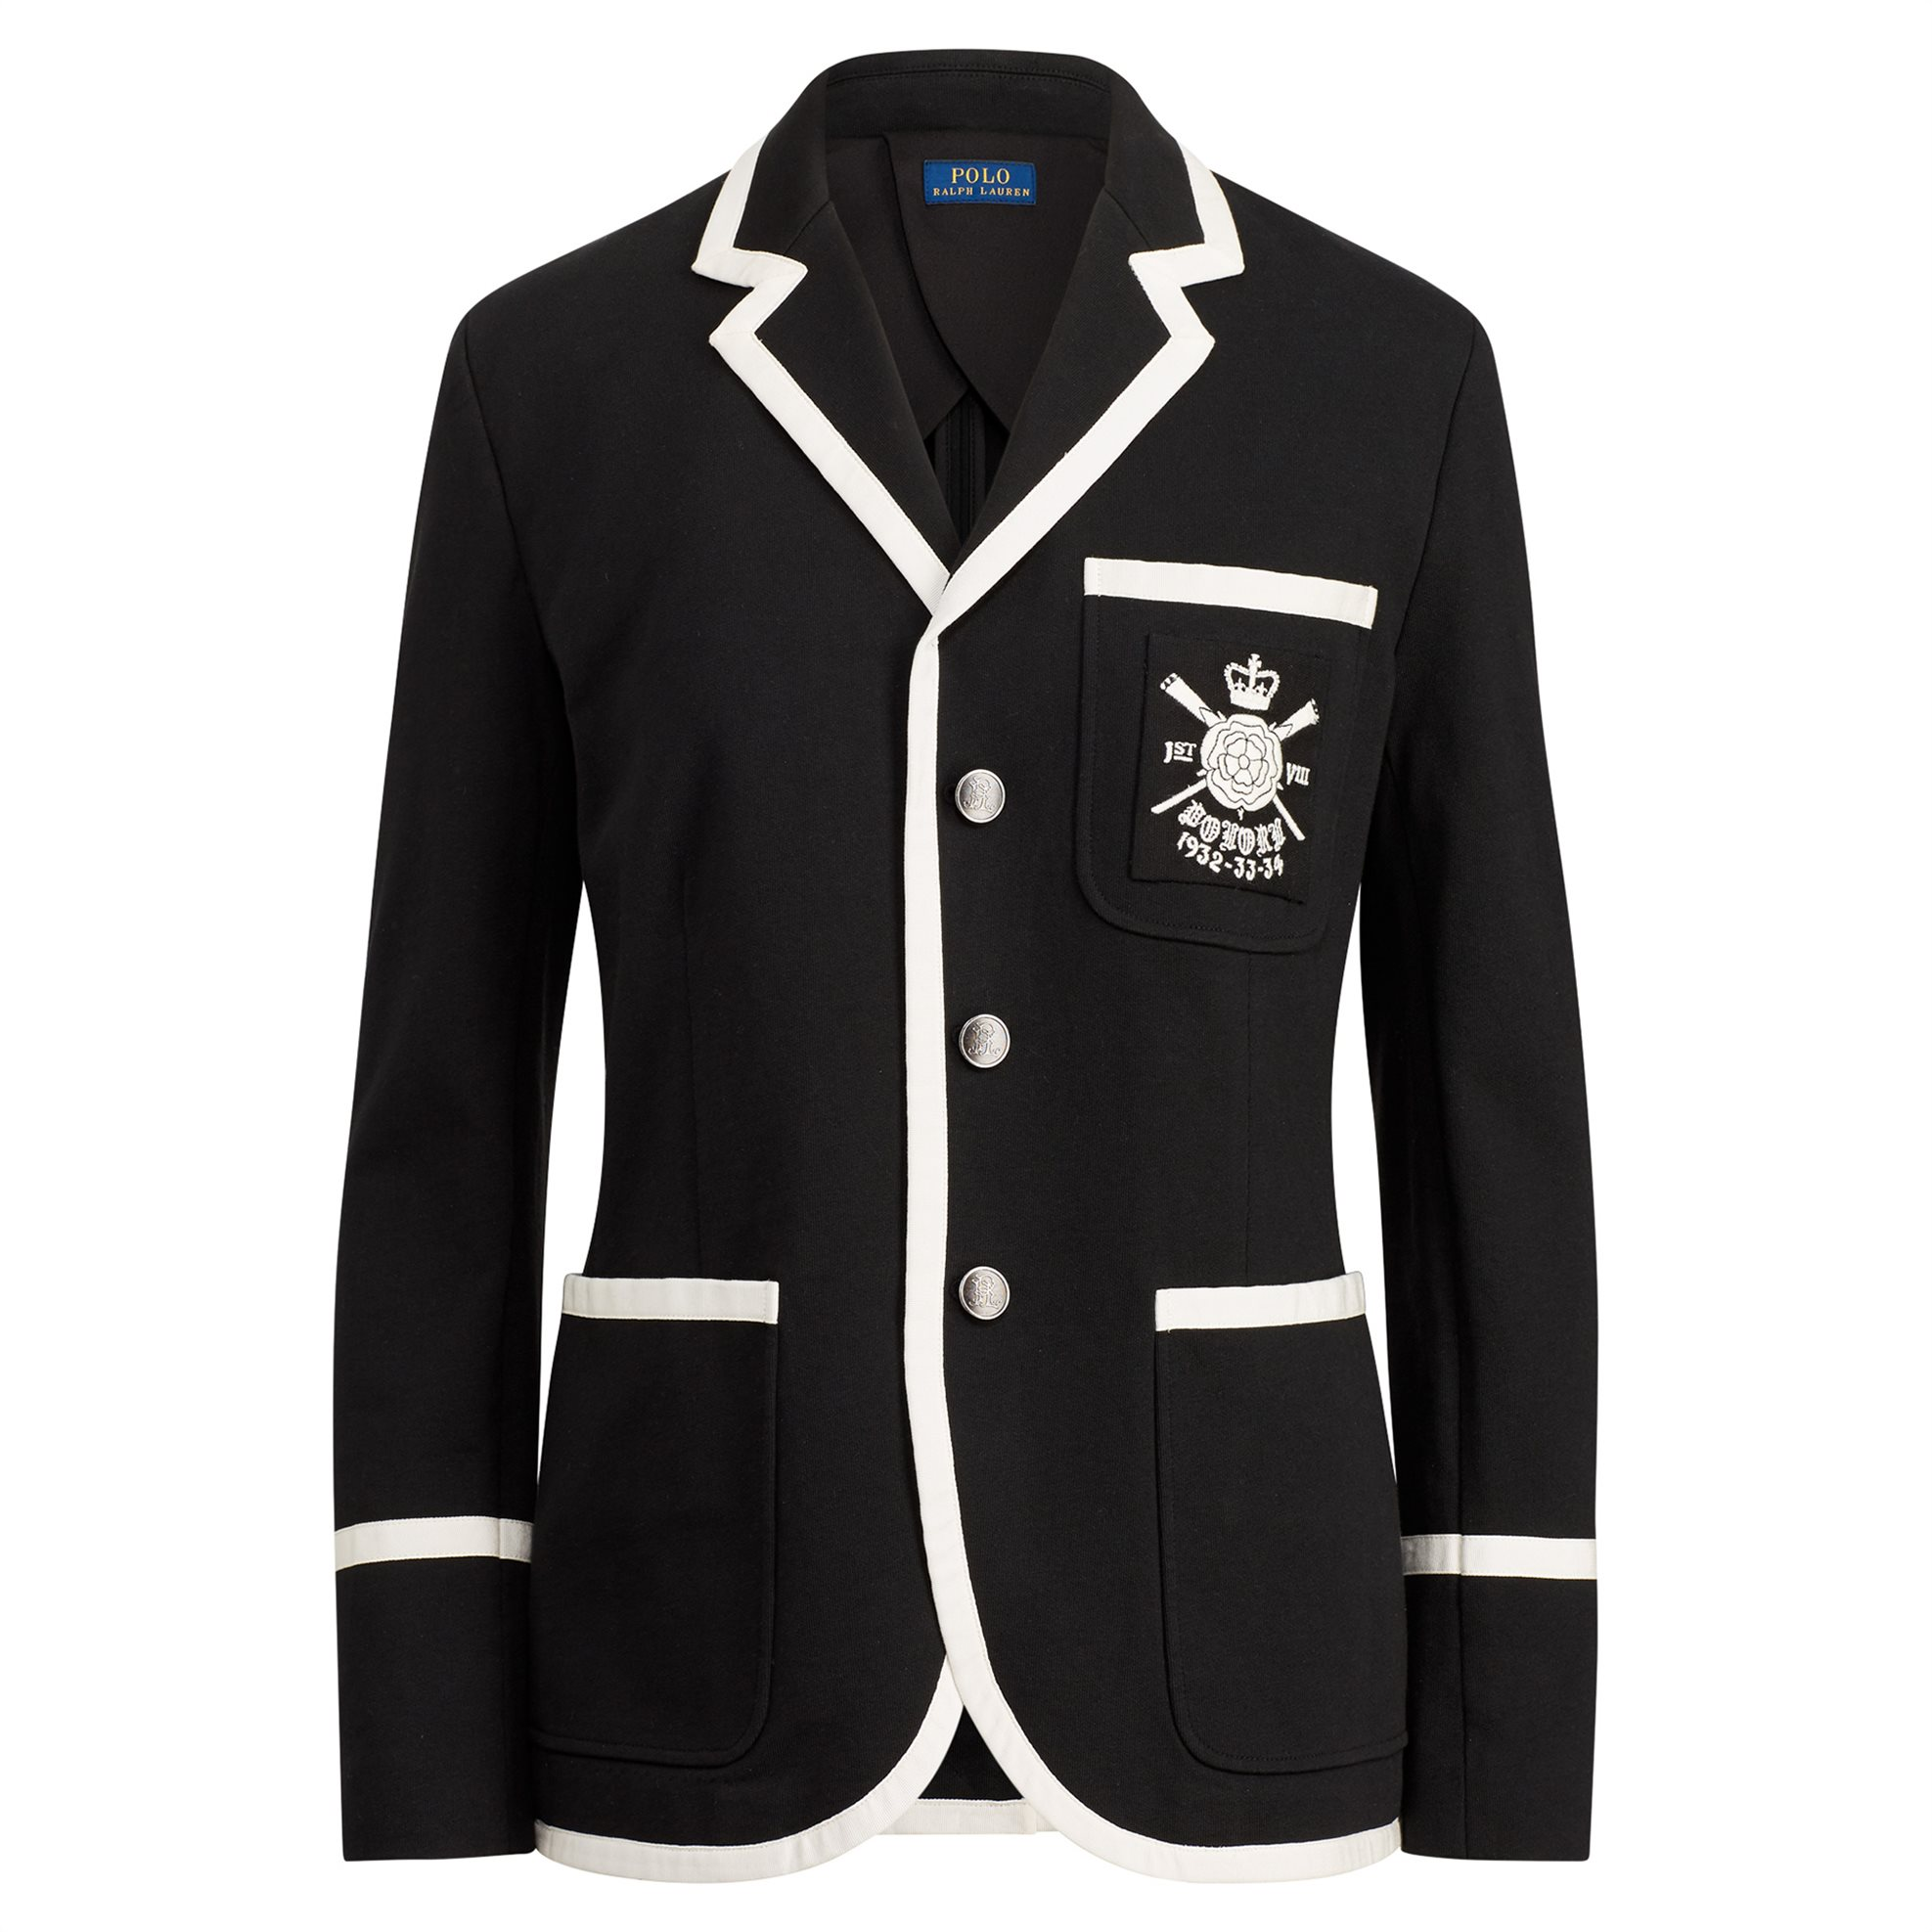 Polo Ralph Lauren γυναικείο σακάκι Embroidered knitted Cotton Blazer - 211704856 γυναικα   ρουχα   πανωφόρια   μπουφάν   σακάκια   σακάκια